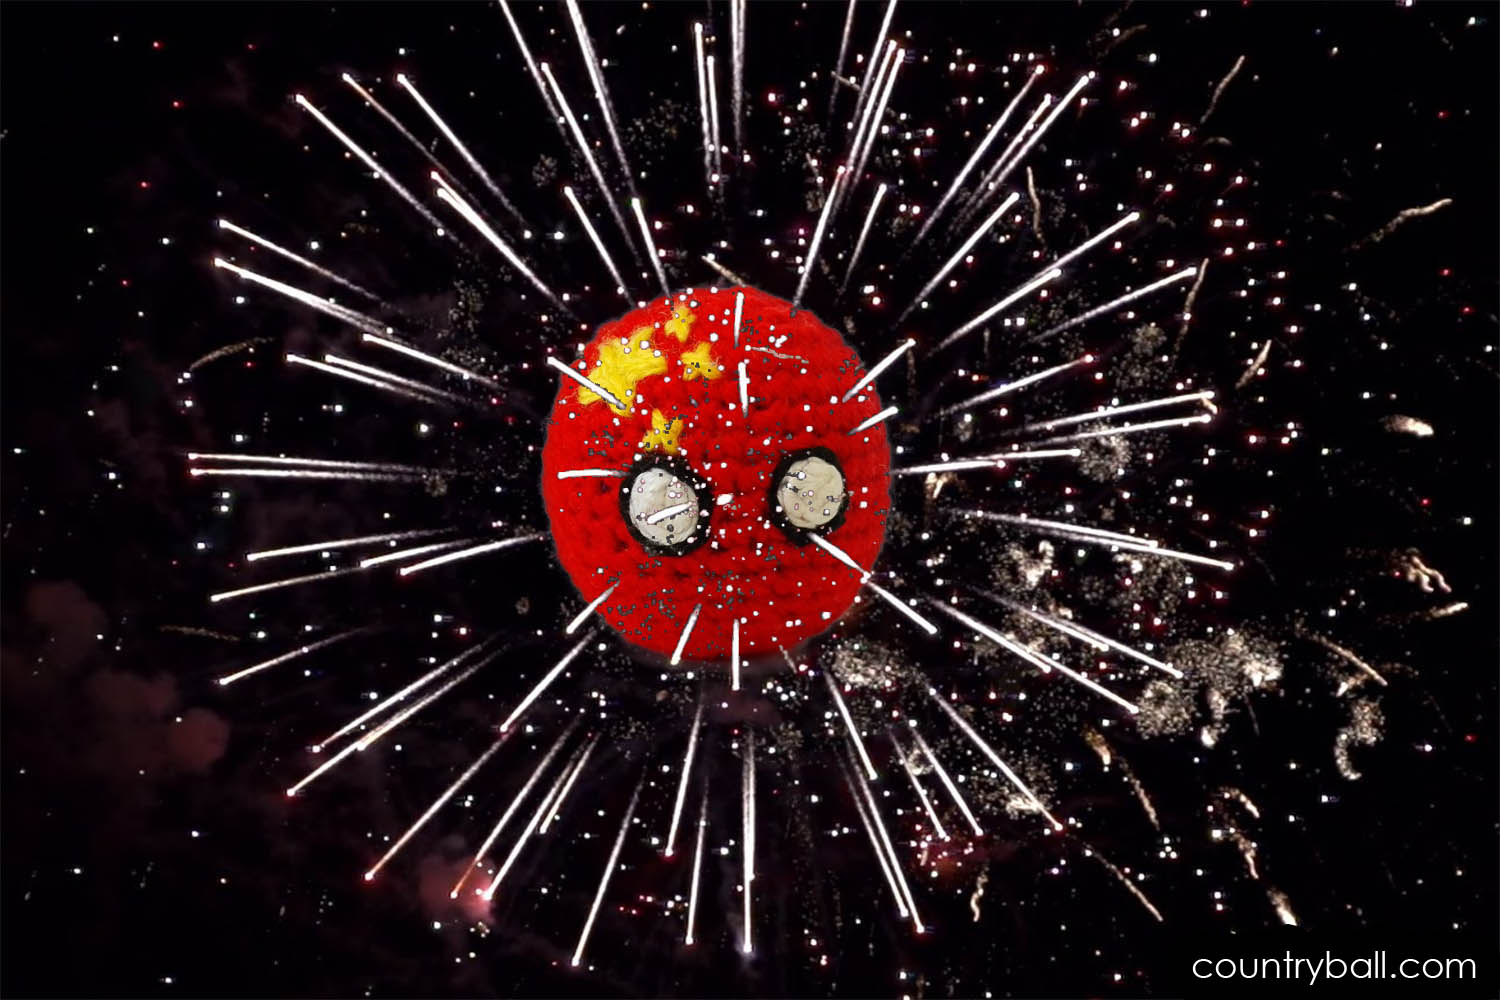 Chinaball with Fireworks